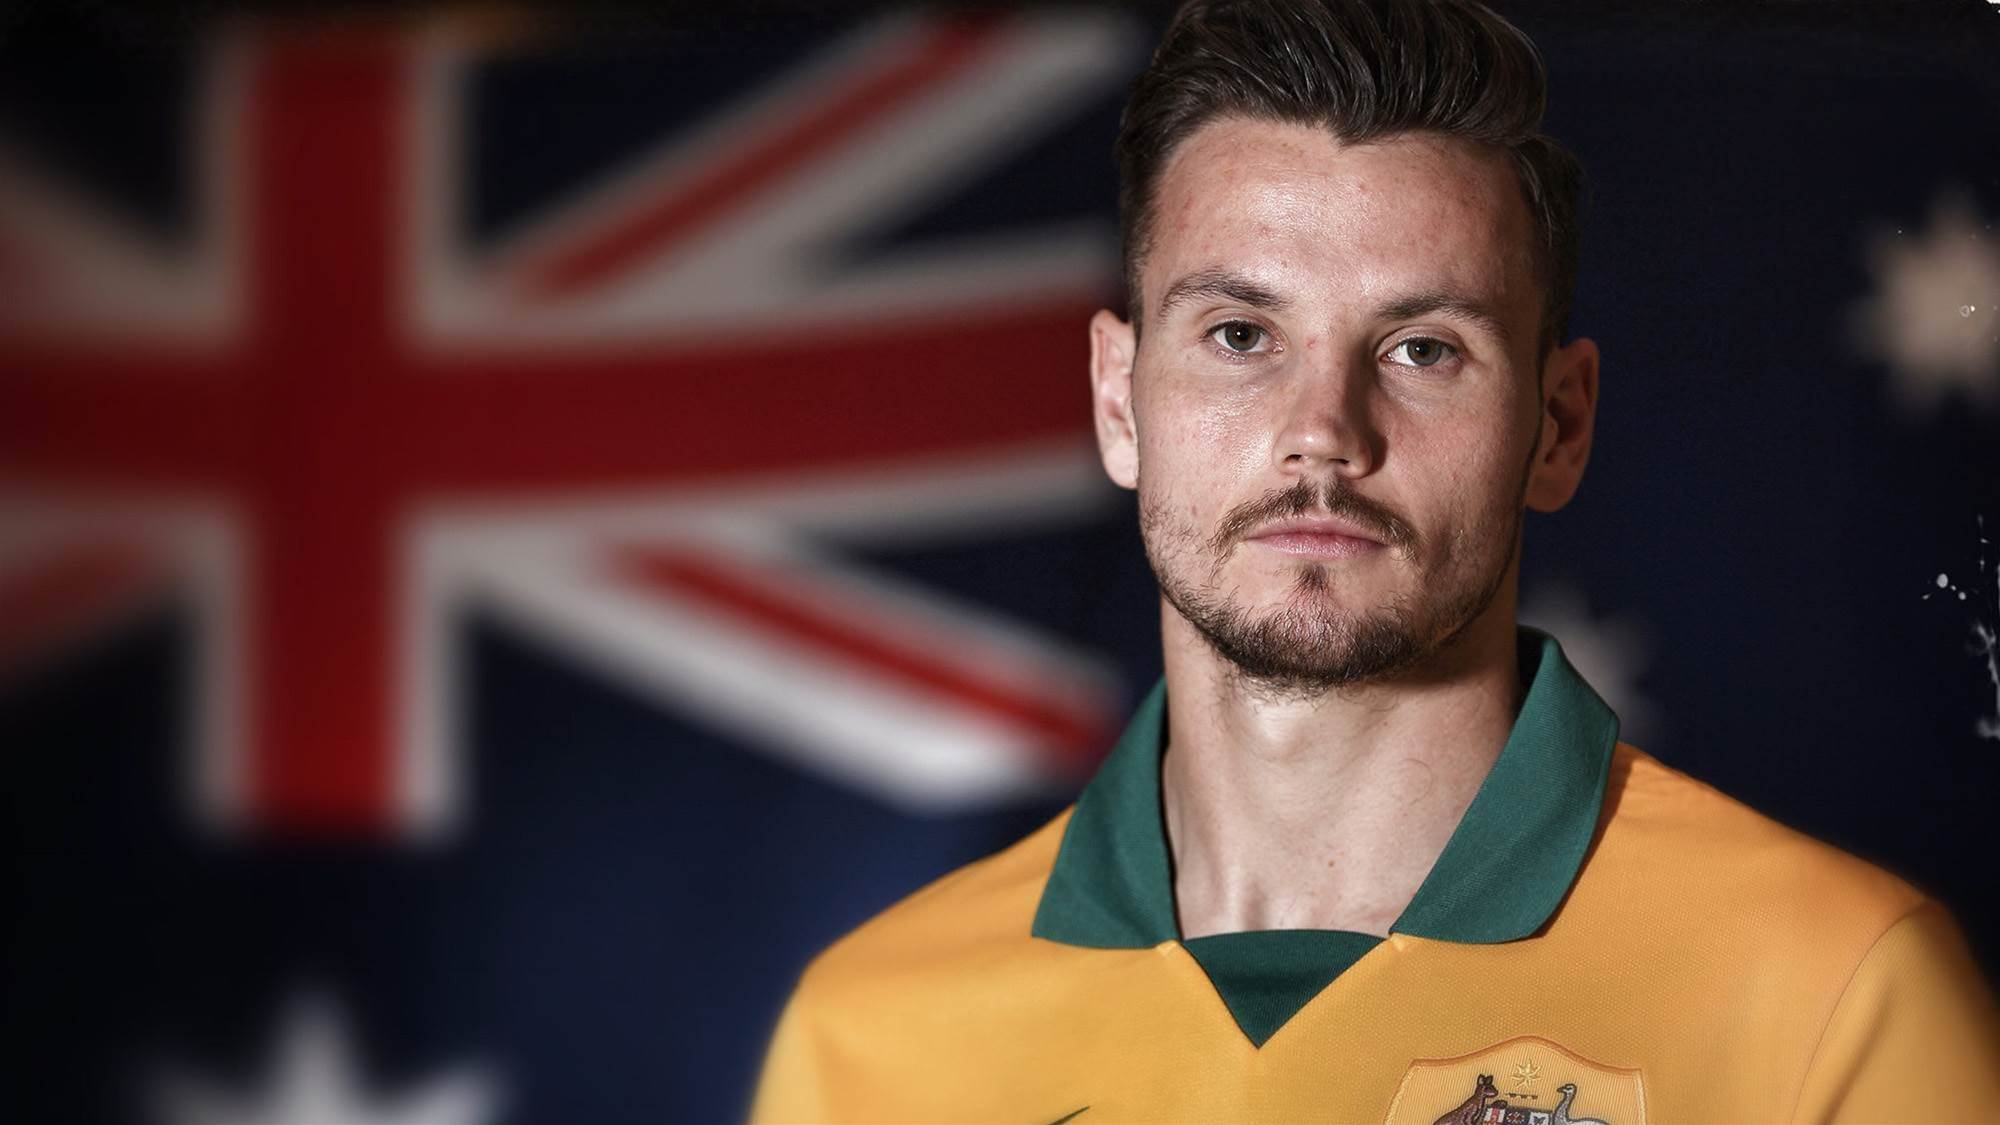 How I'll get back into the Socceroos, by Chris Herd